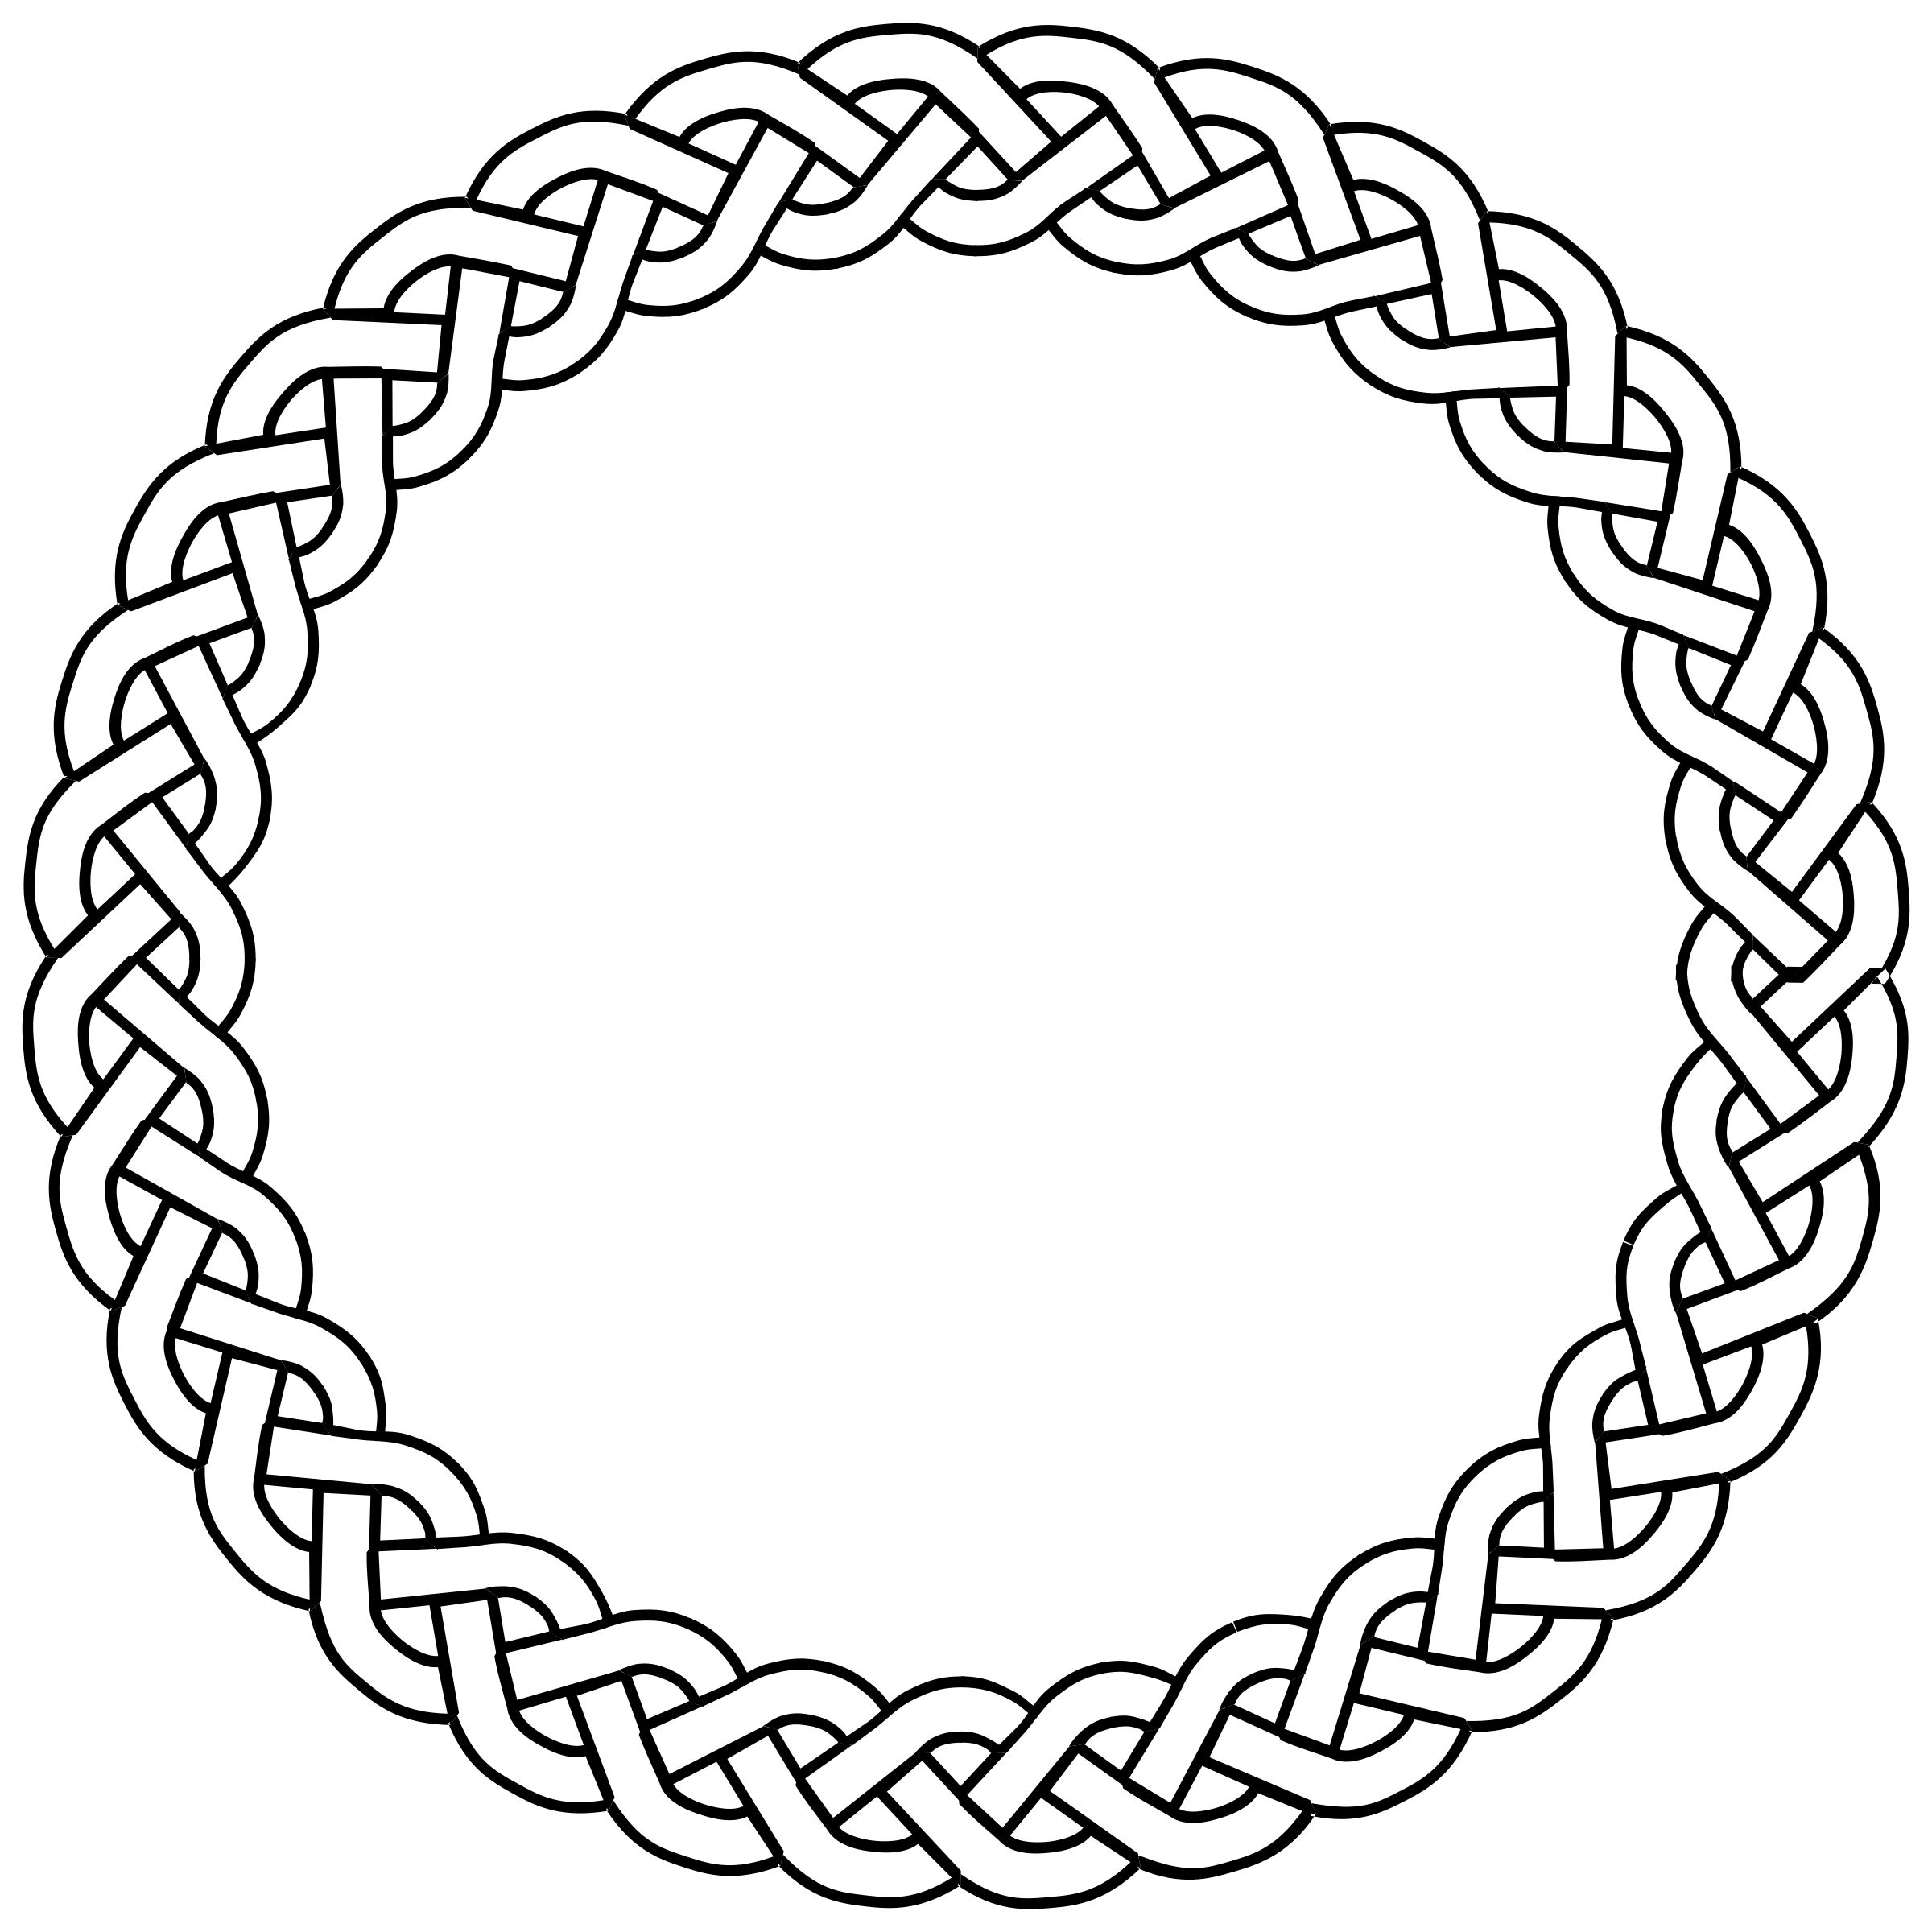 clipart rope border circle - photo #44